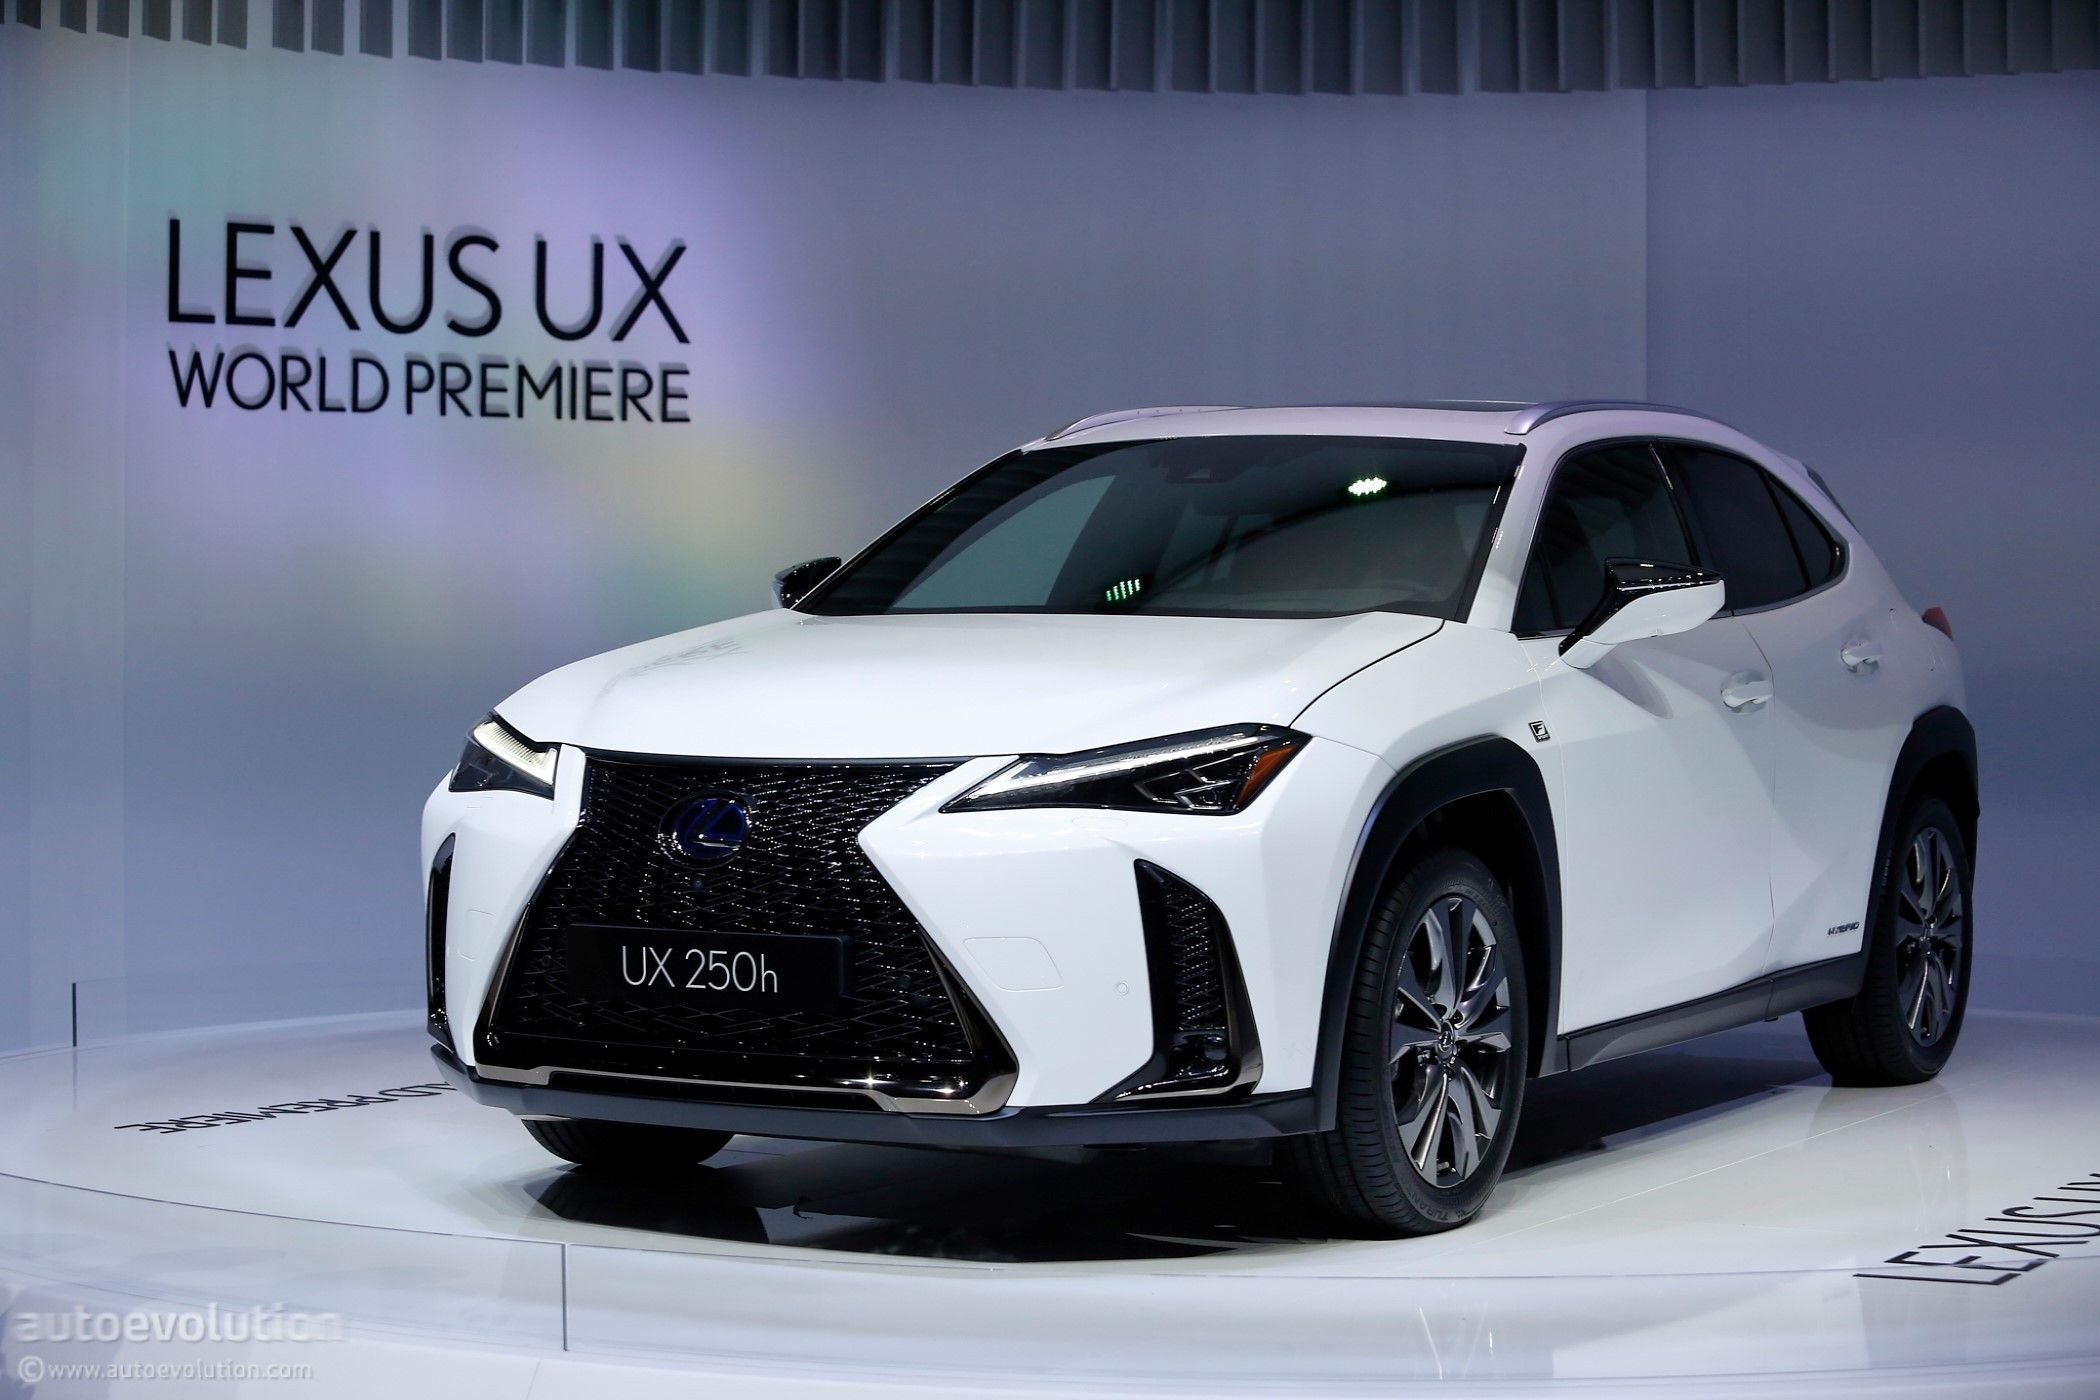 See Models And Pricing As Well As Photos And Videos About 2020 Lexus Ux Hybrid We Reviews The 2020 Lexus Ux Hybrid Review Where Co New Lexus Lexus Car Review